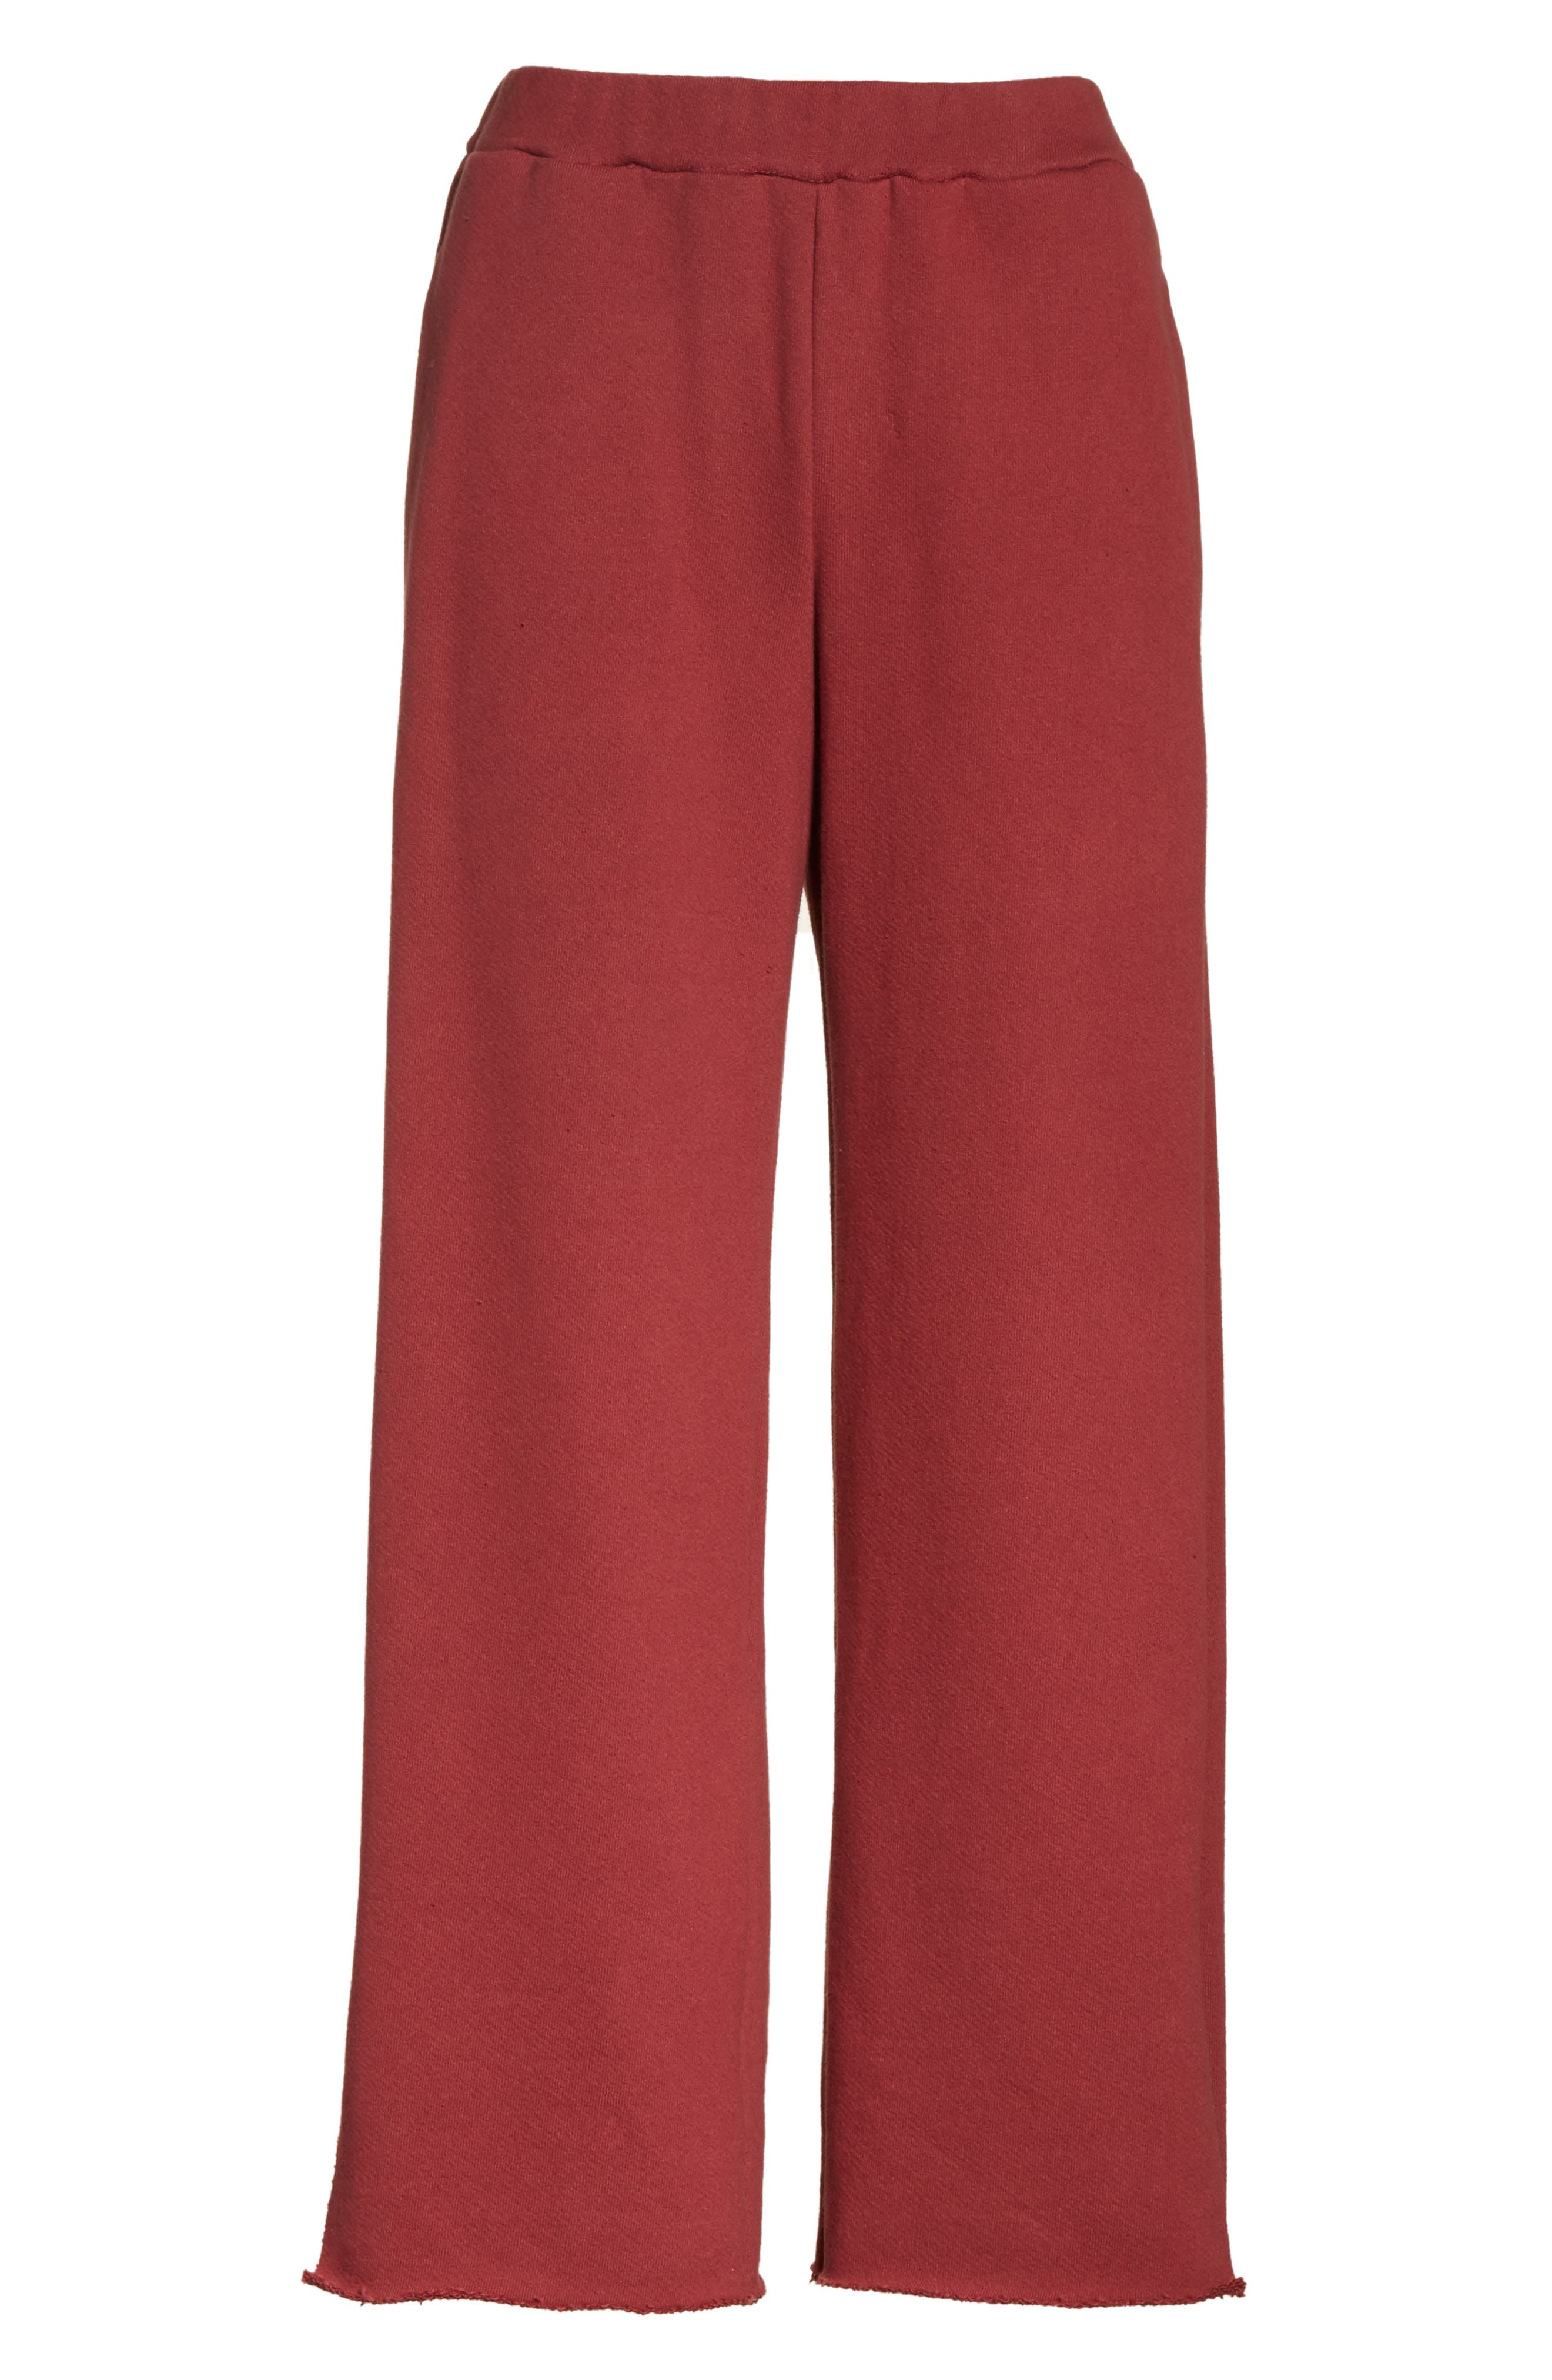 Canal French Terry Sweatpants,                             Alternate thumbnail 6, color,